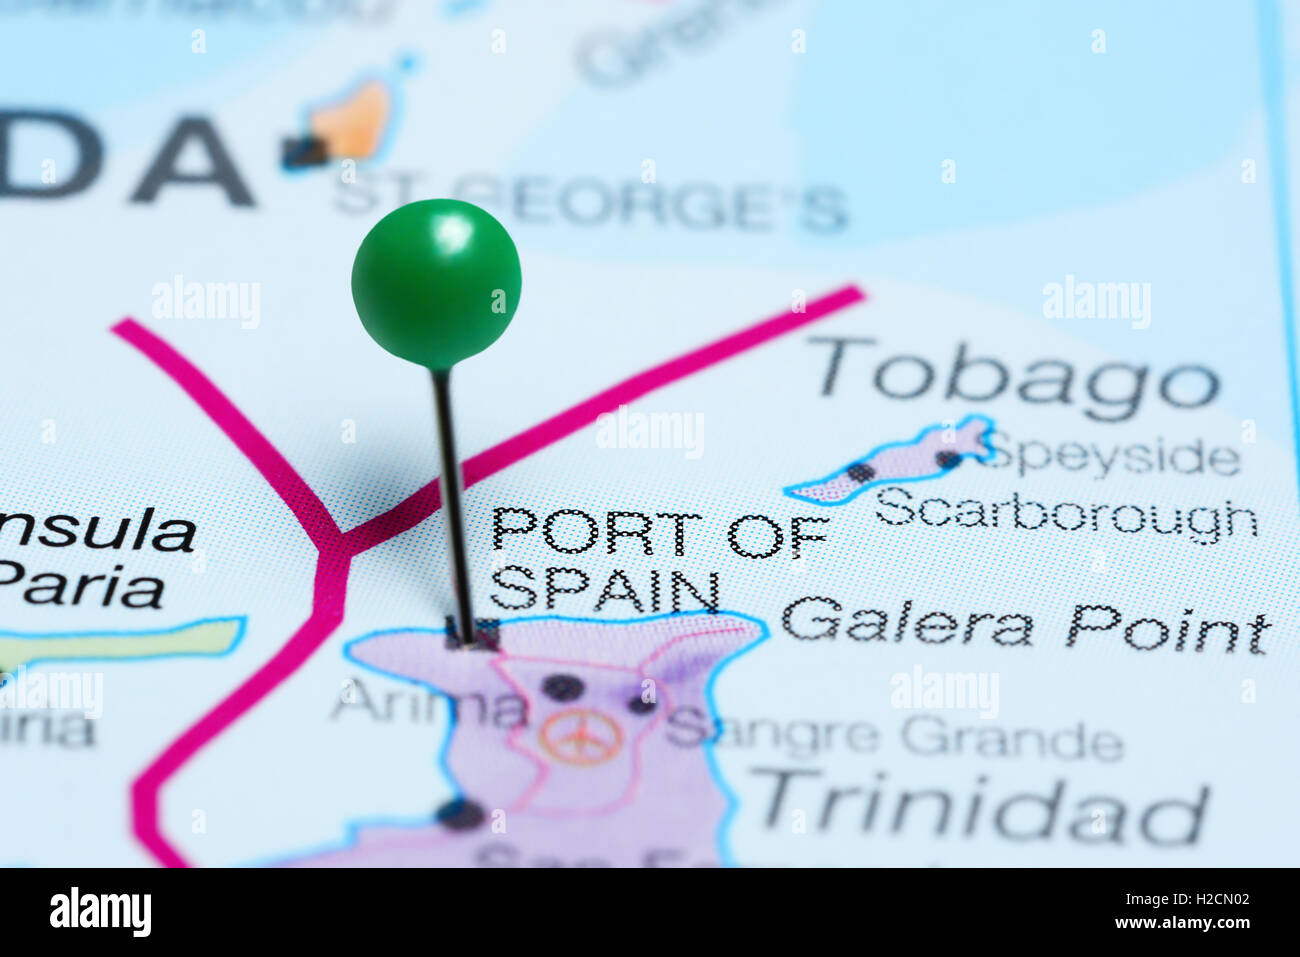 Picture of: Port Of Spain Pinned On A Map Of Trinidad And Tobago Stock Photo Alamy